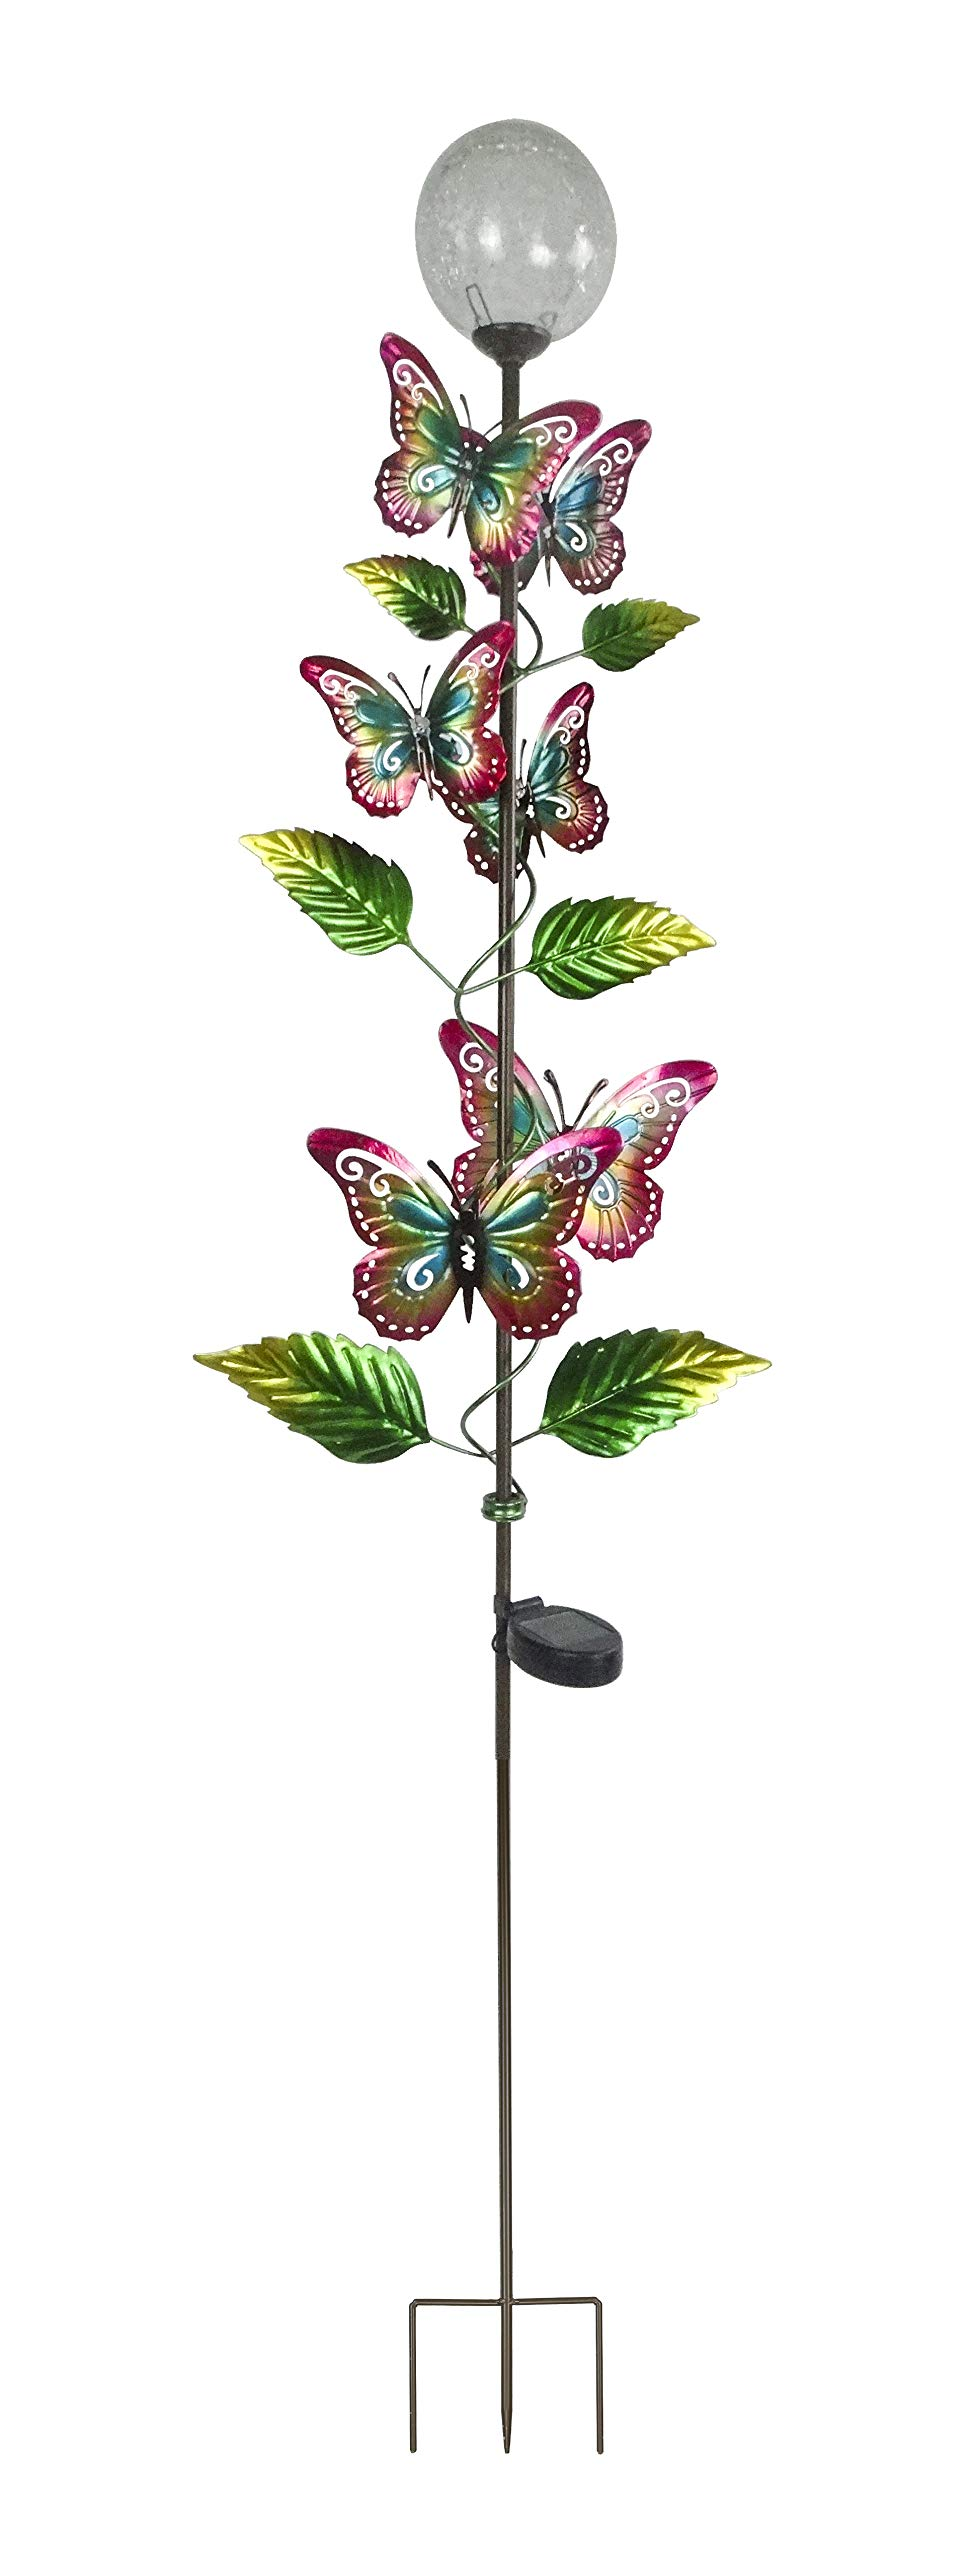 Alpine Corporation RGG288SLR Solar Metal Butterfly Garden Stake w/White LED Ligh, 64 Inch Tall, Multi-Color